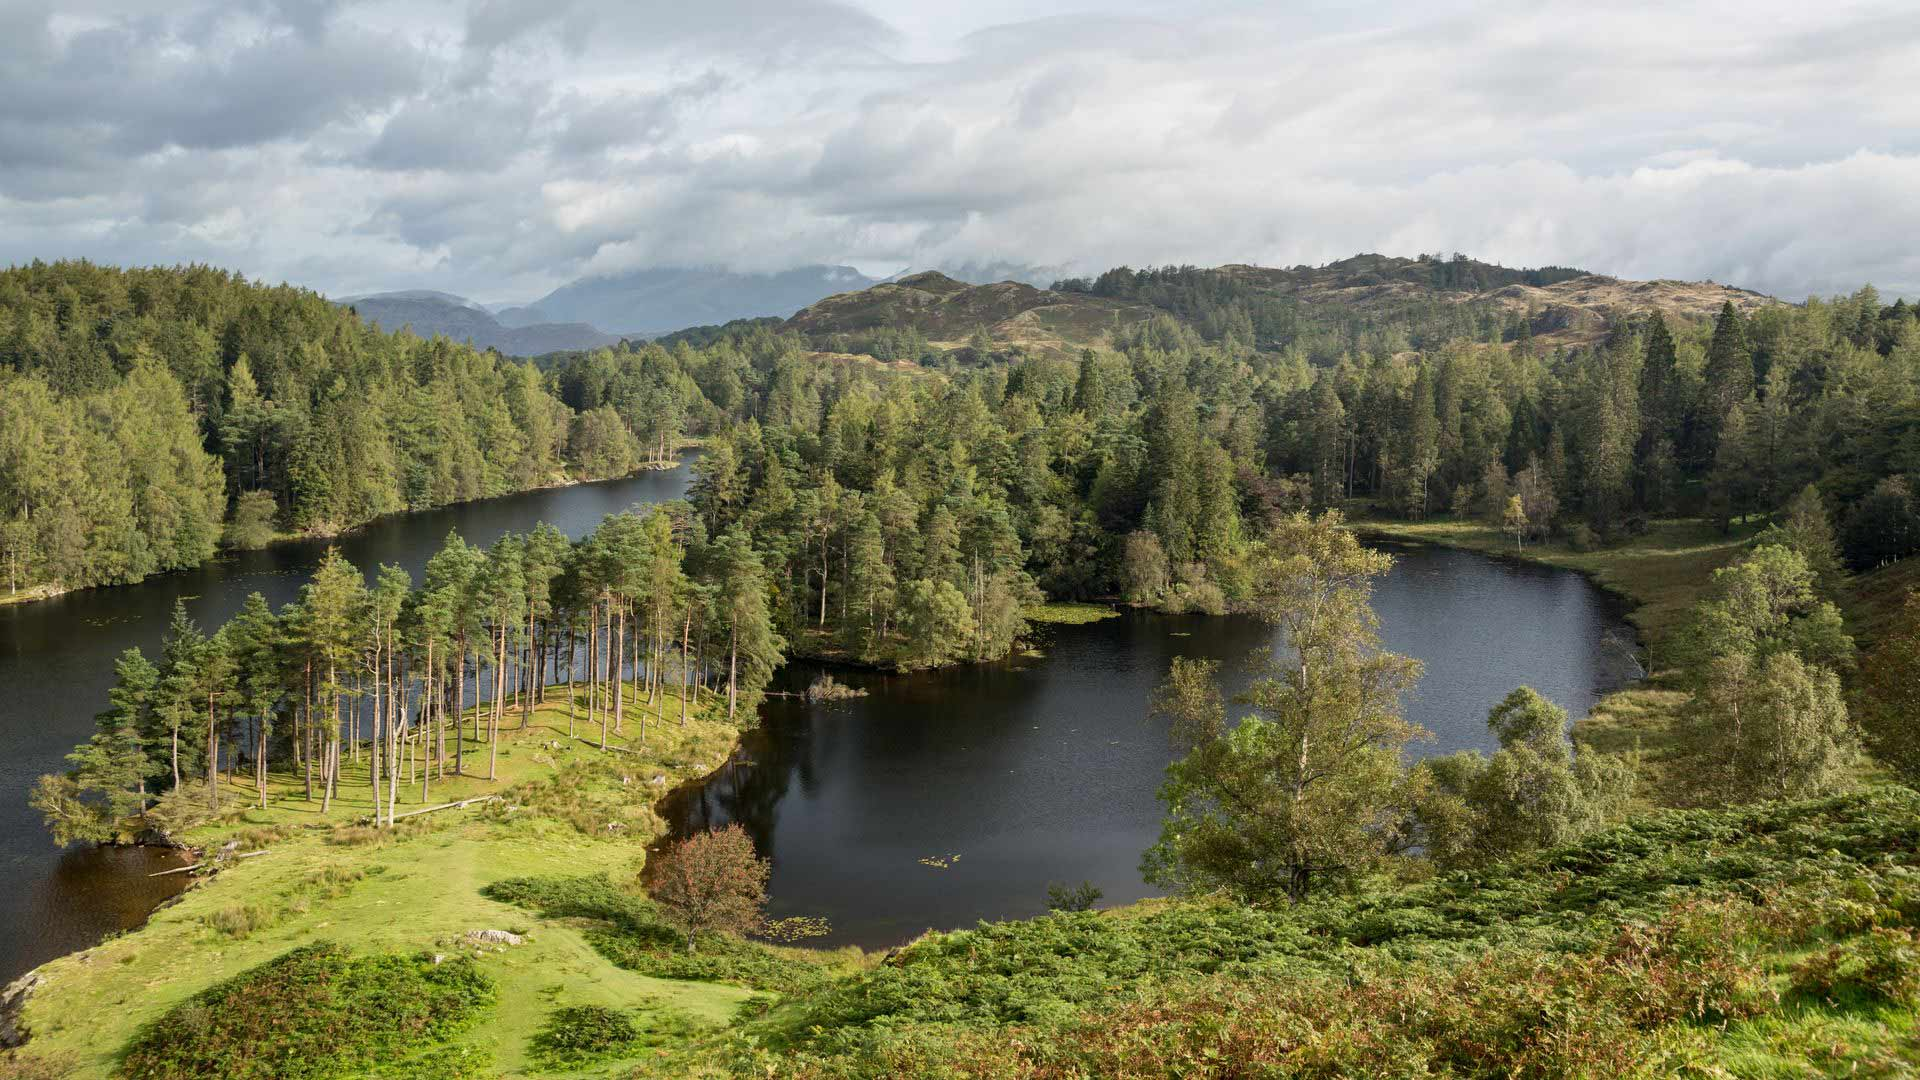 Tarn Hows, Lake District, Northern England